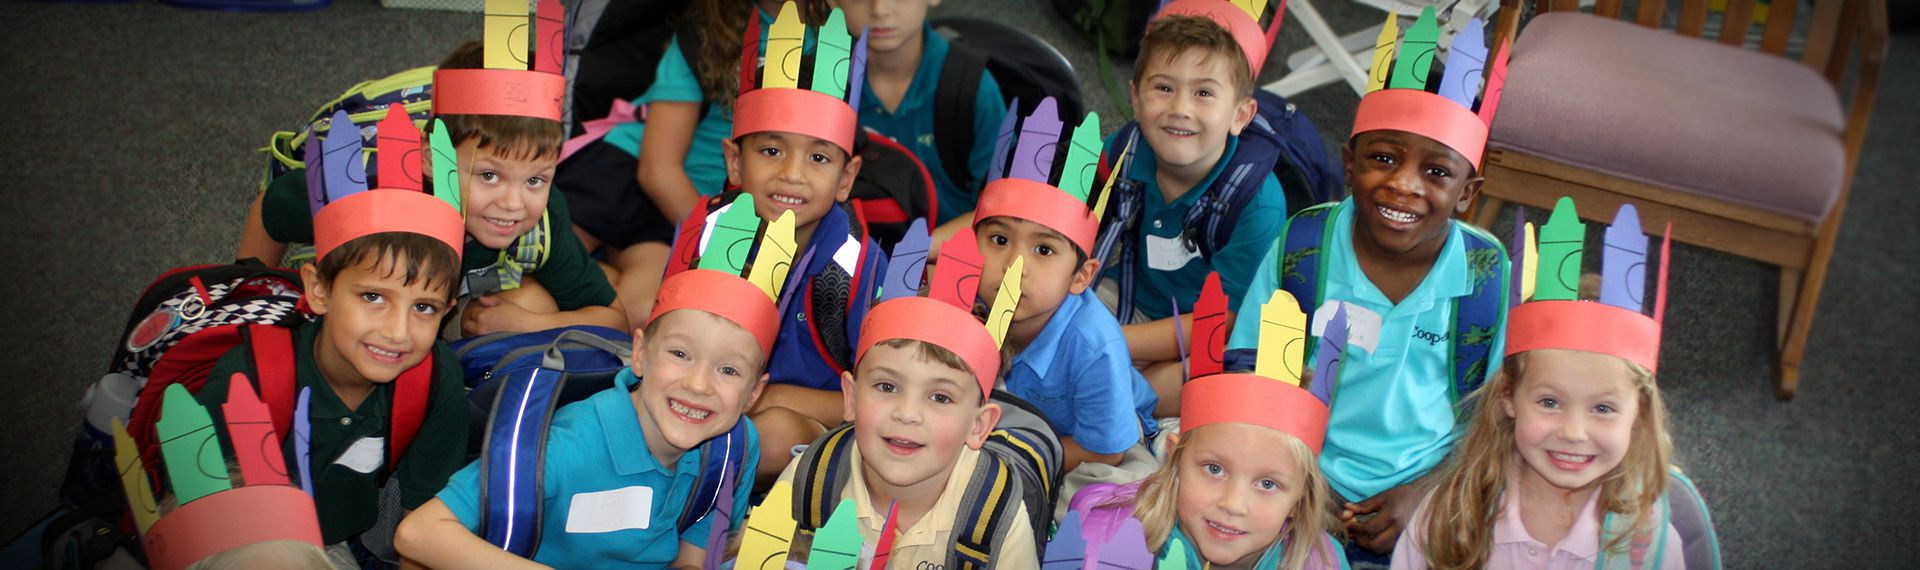 Kindergarden class poses while wearing homemade hats.